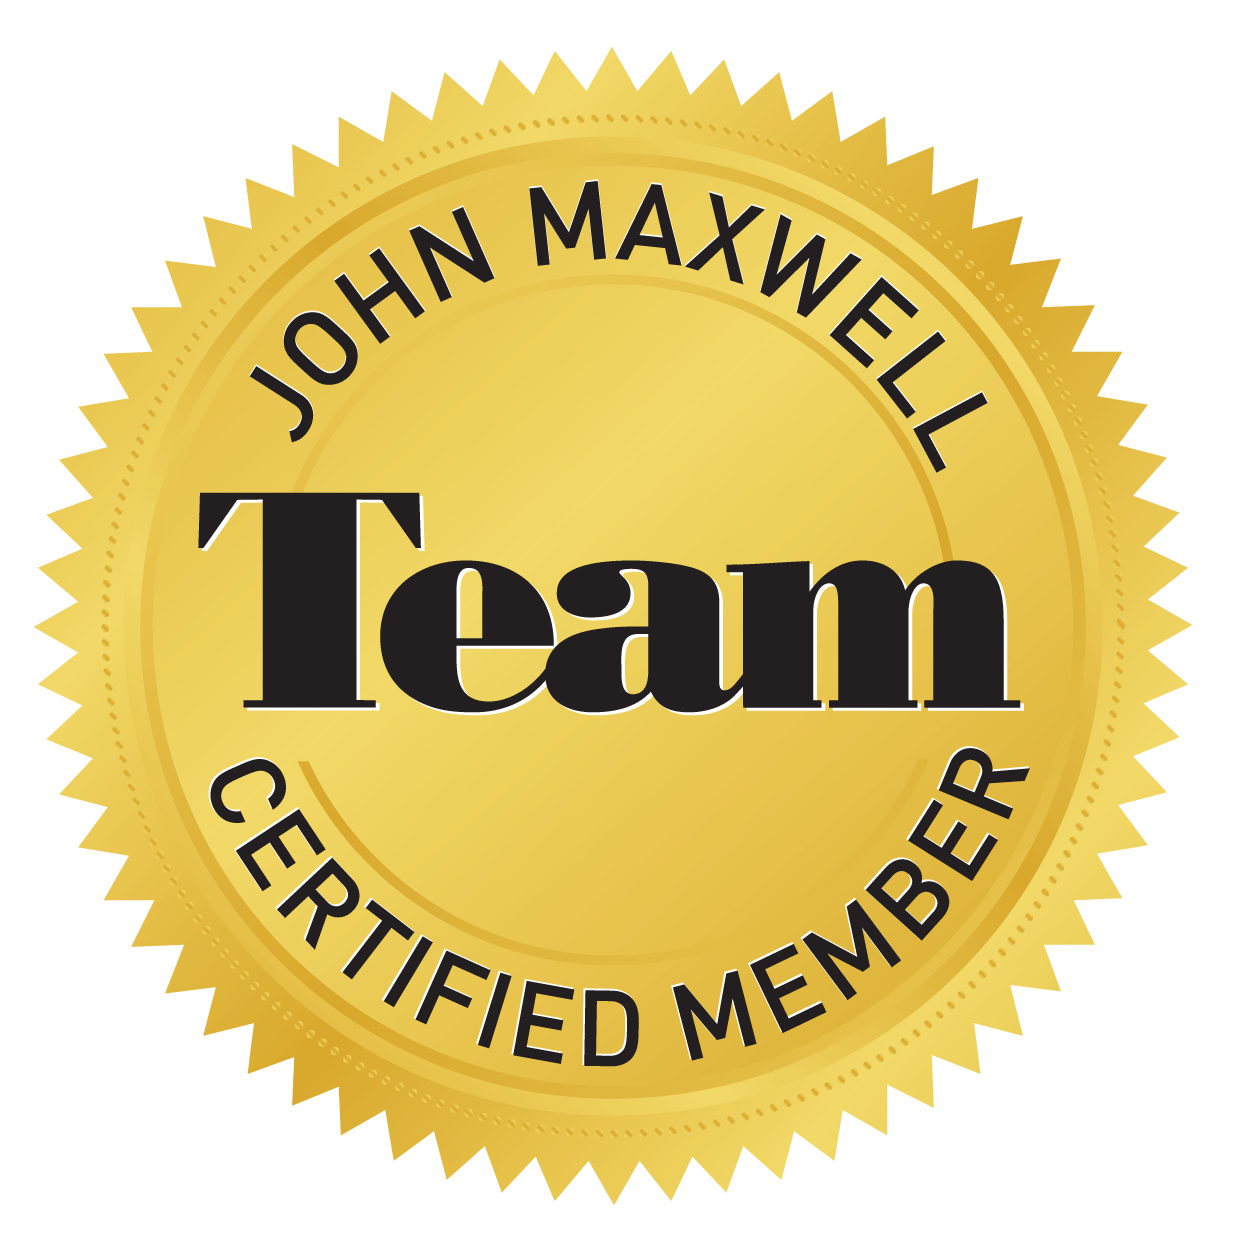 Mona Vogele is a John Maxwell Team Certified Speaker